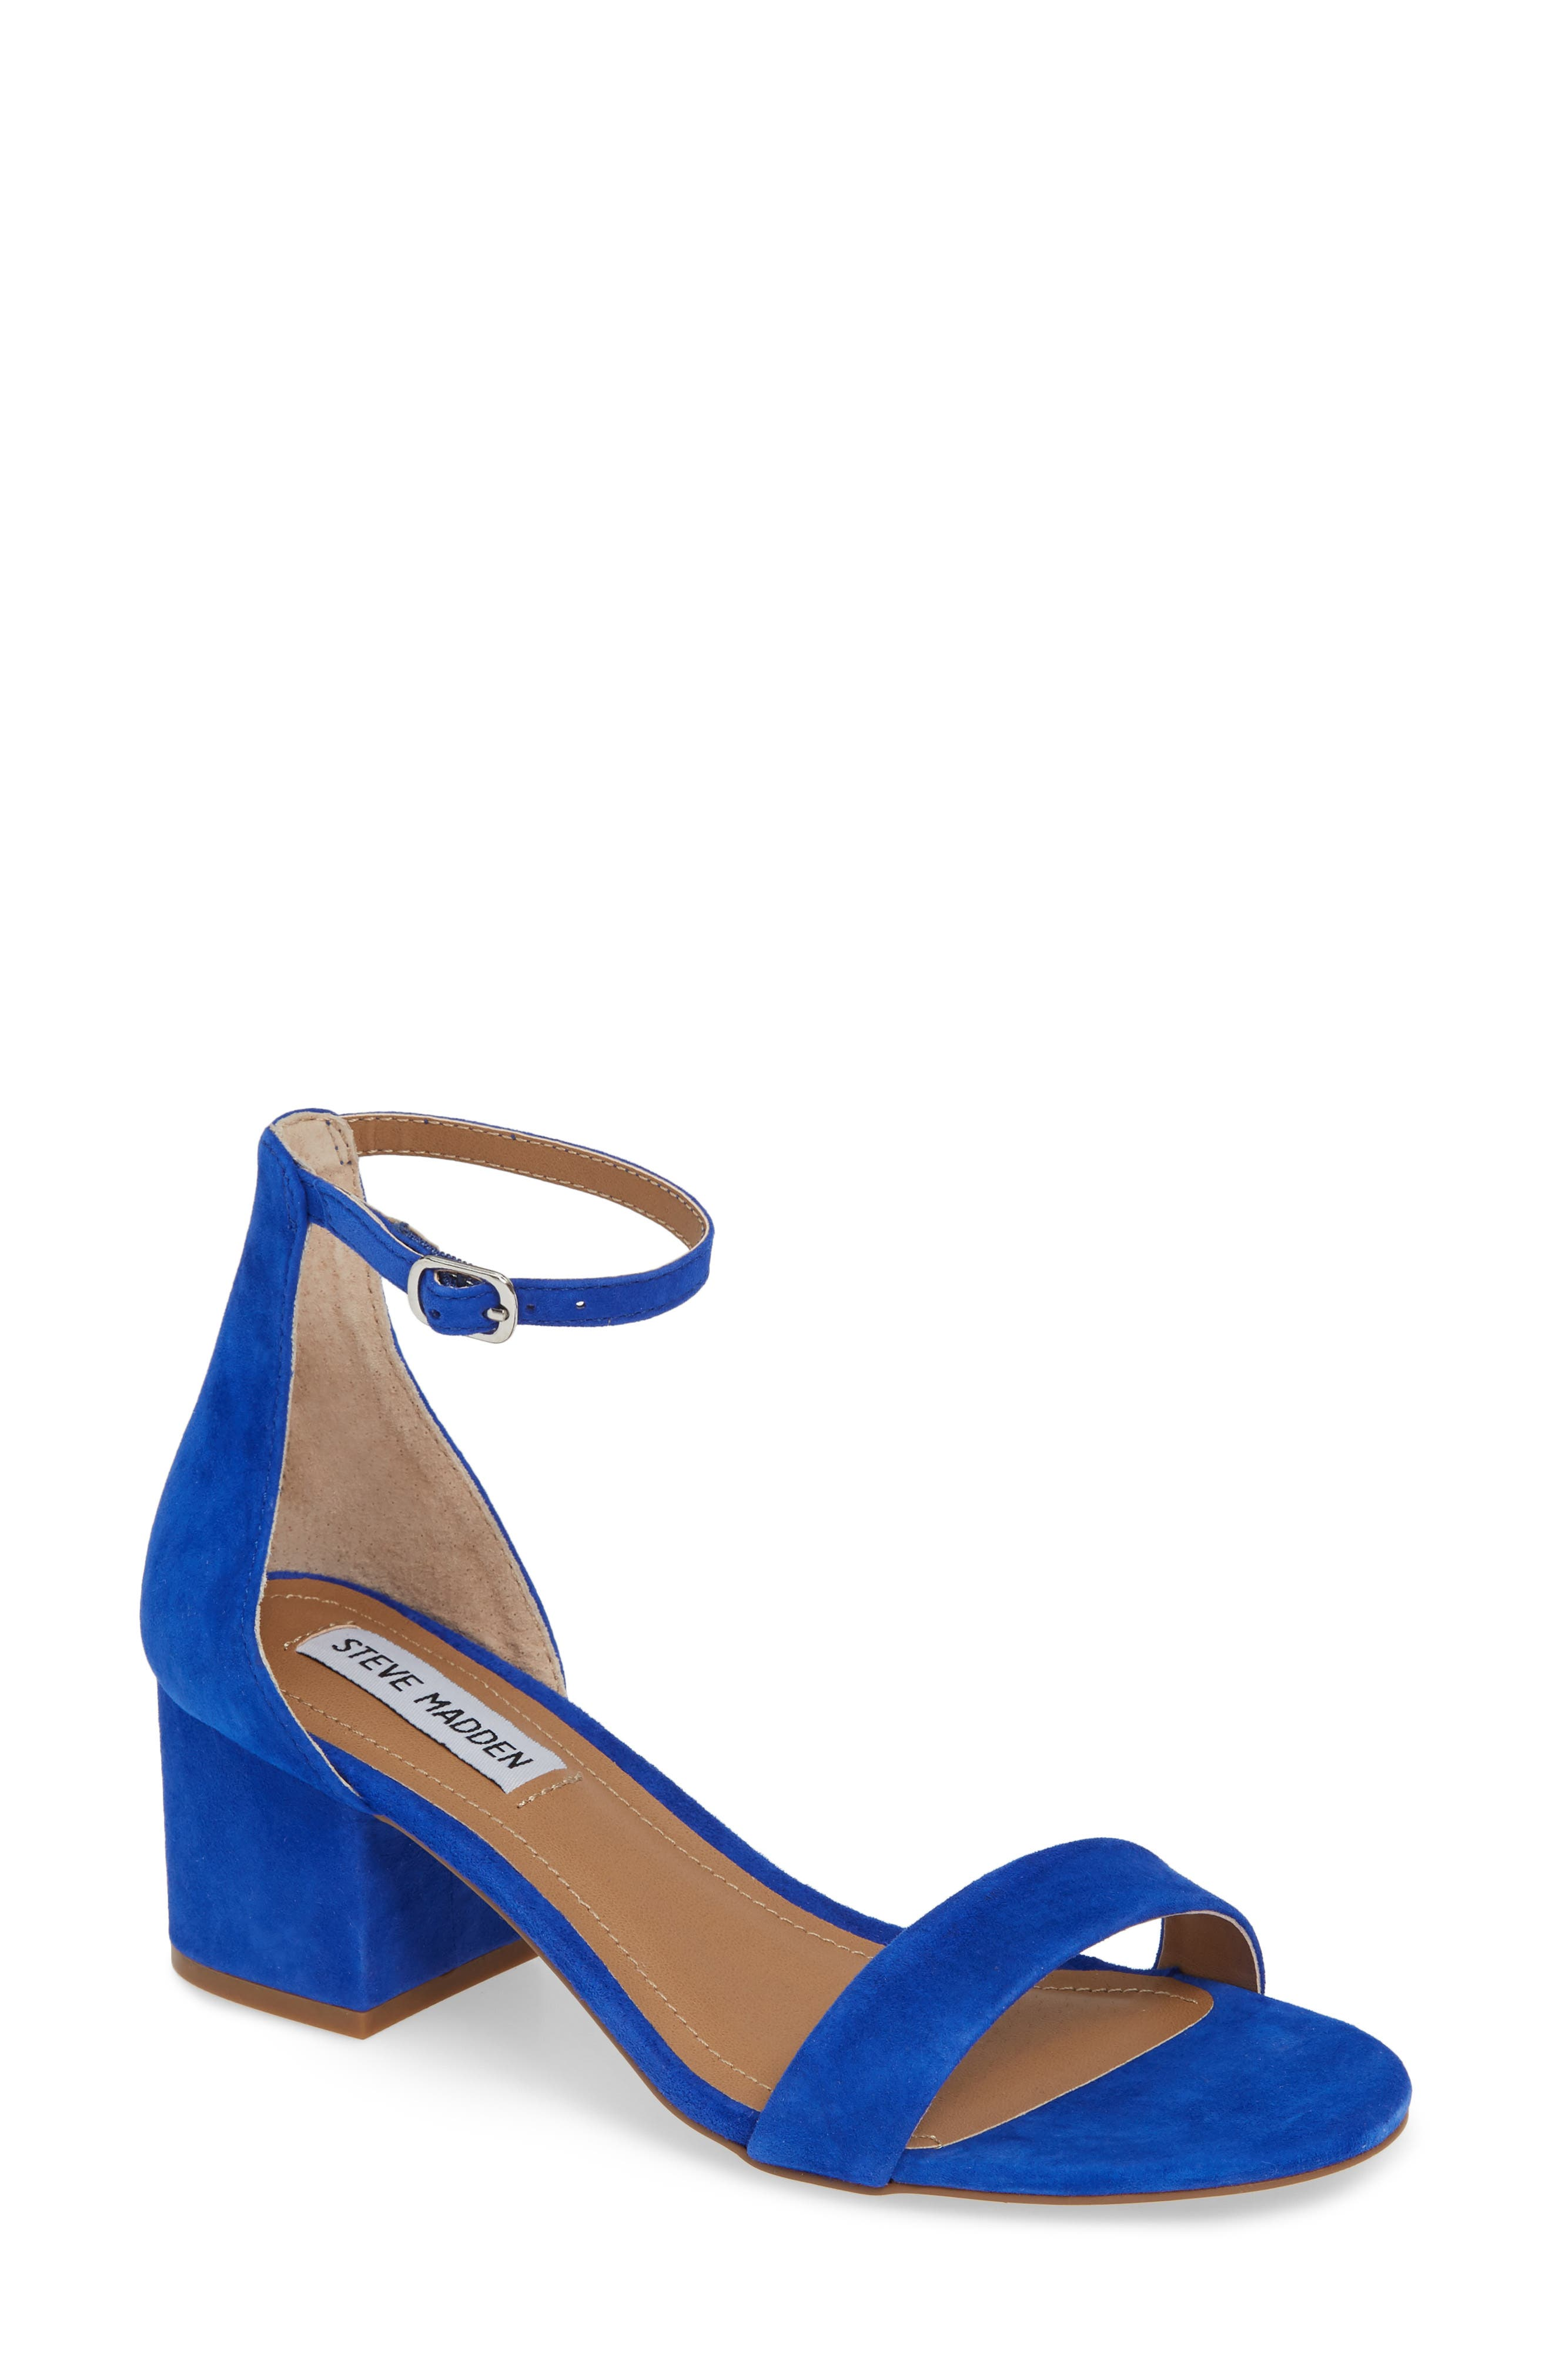 ,                             Irenee Ankle Strap Sandal,                             Main thumbnail 60, color,                             425